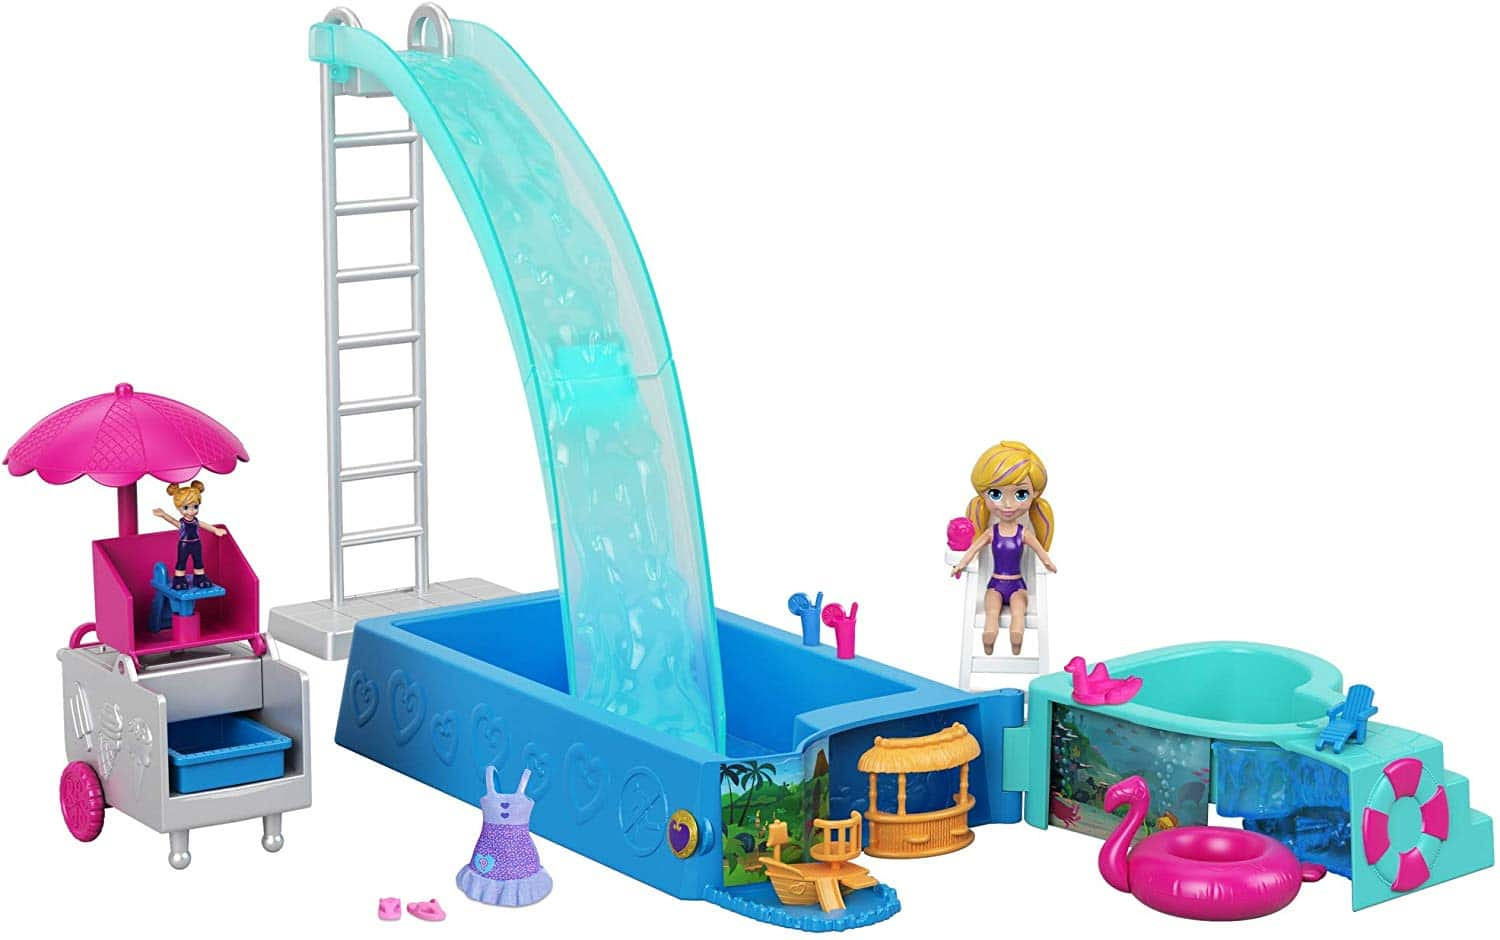 Polly Pocket Active Doll Playset $9.99 & More - Amazon